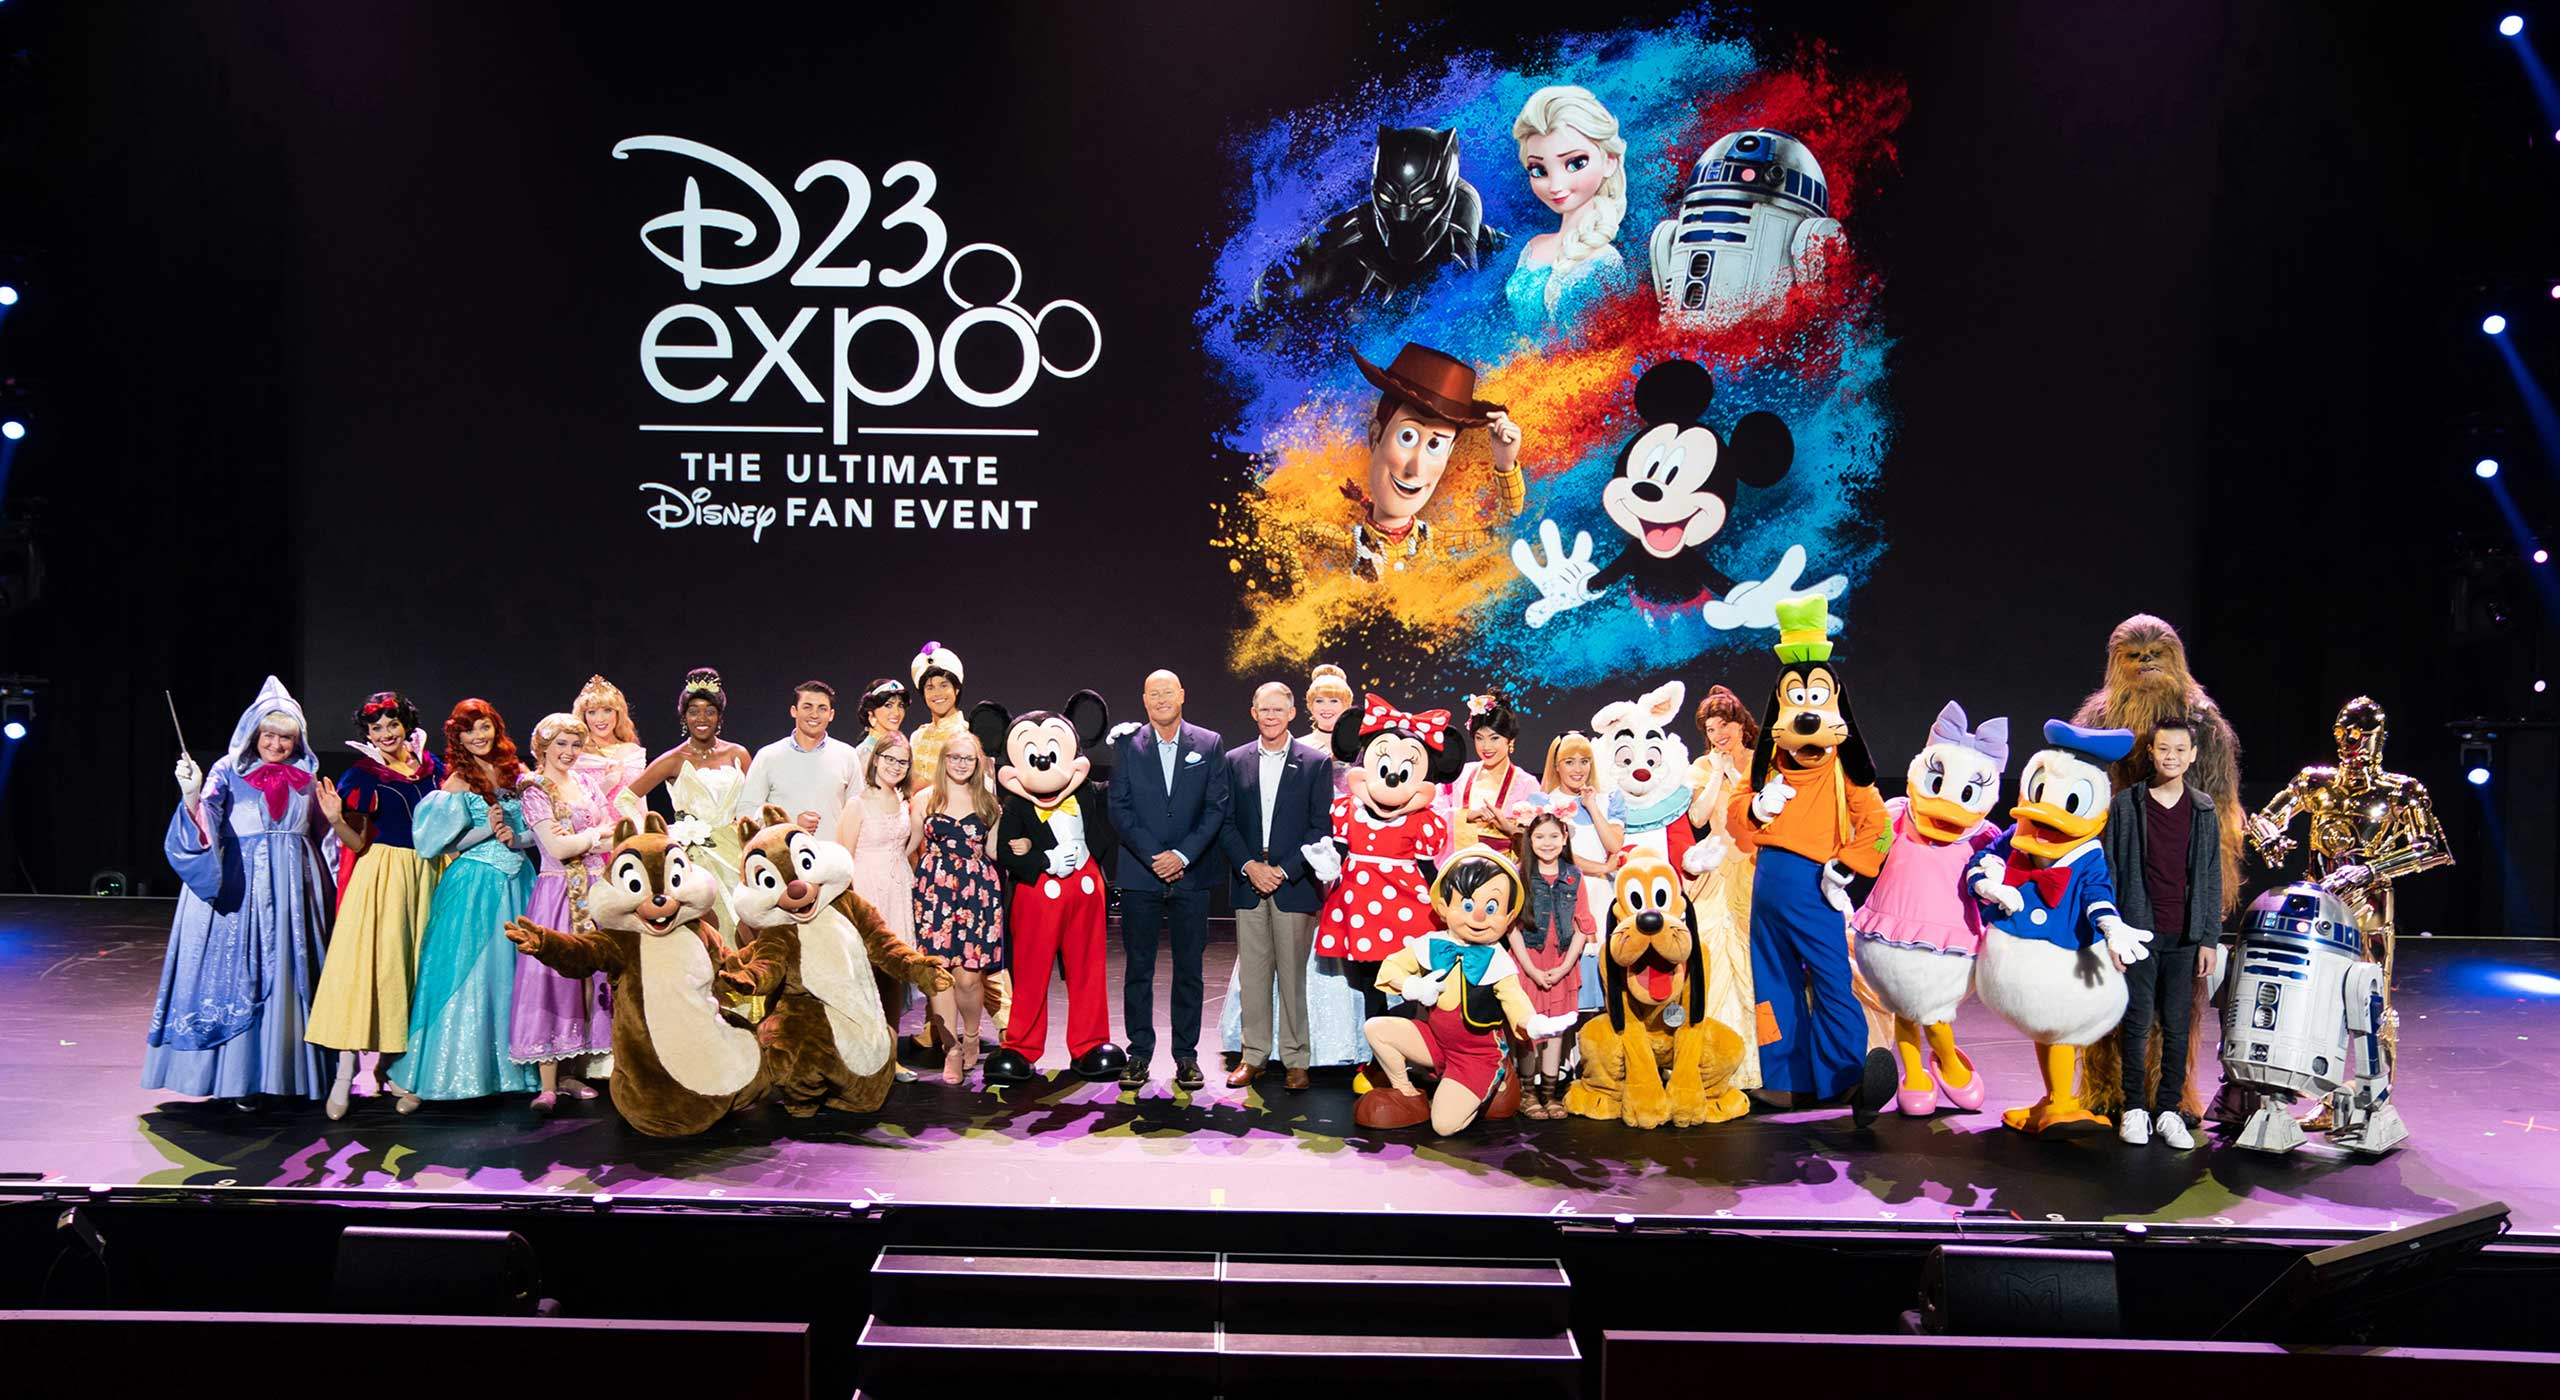 Everything announced for Walt Disney World at D23 EXPO